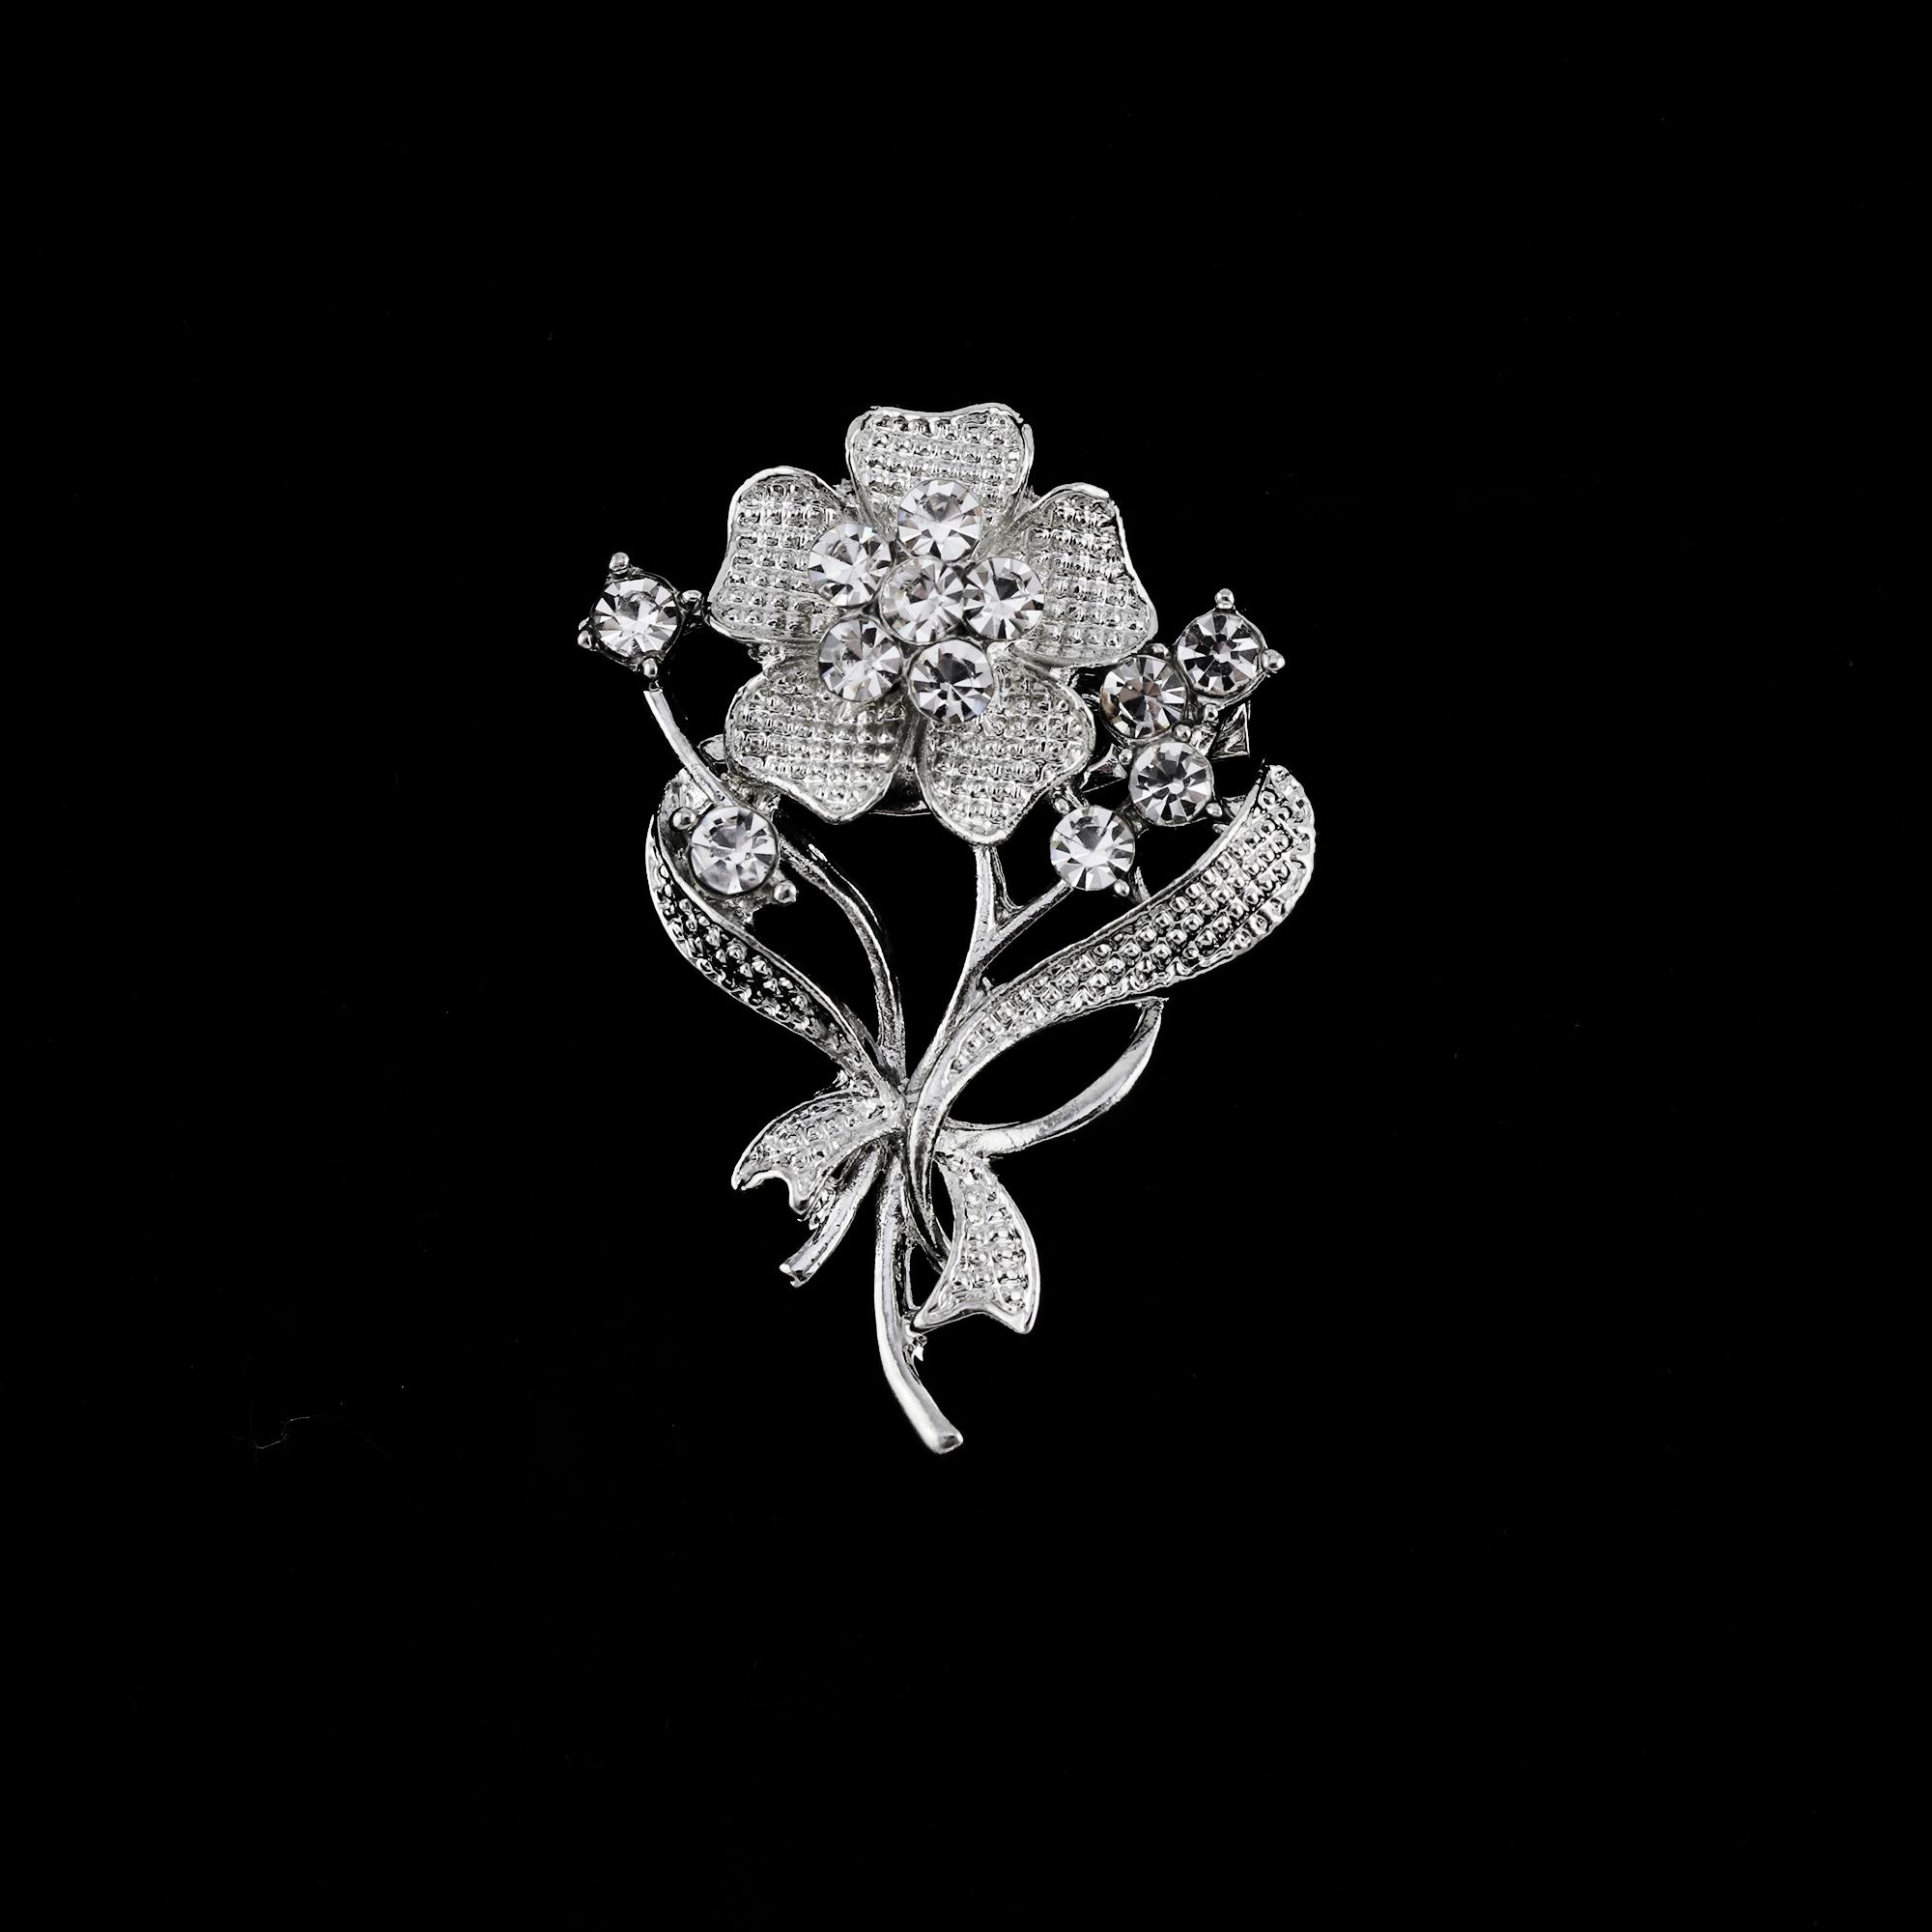 66cac0f0ada Brooches for sale - Womens Brooches online brands, prices & reviews ...